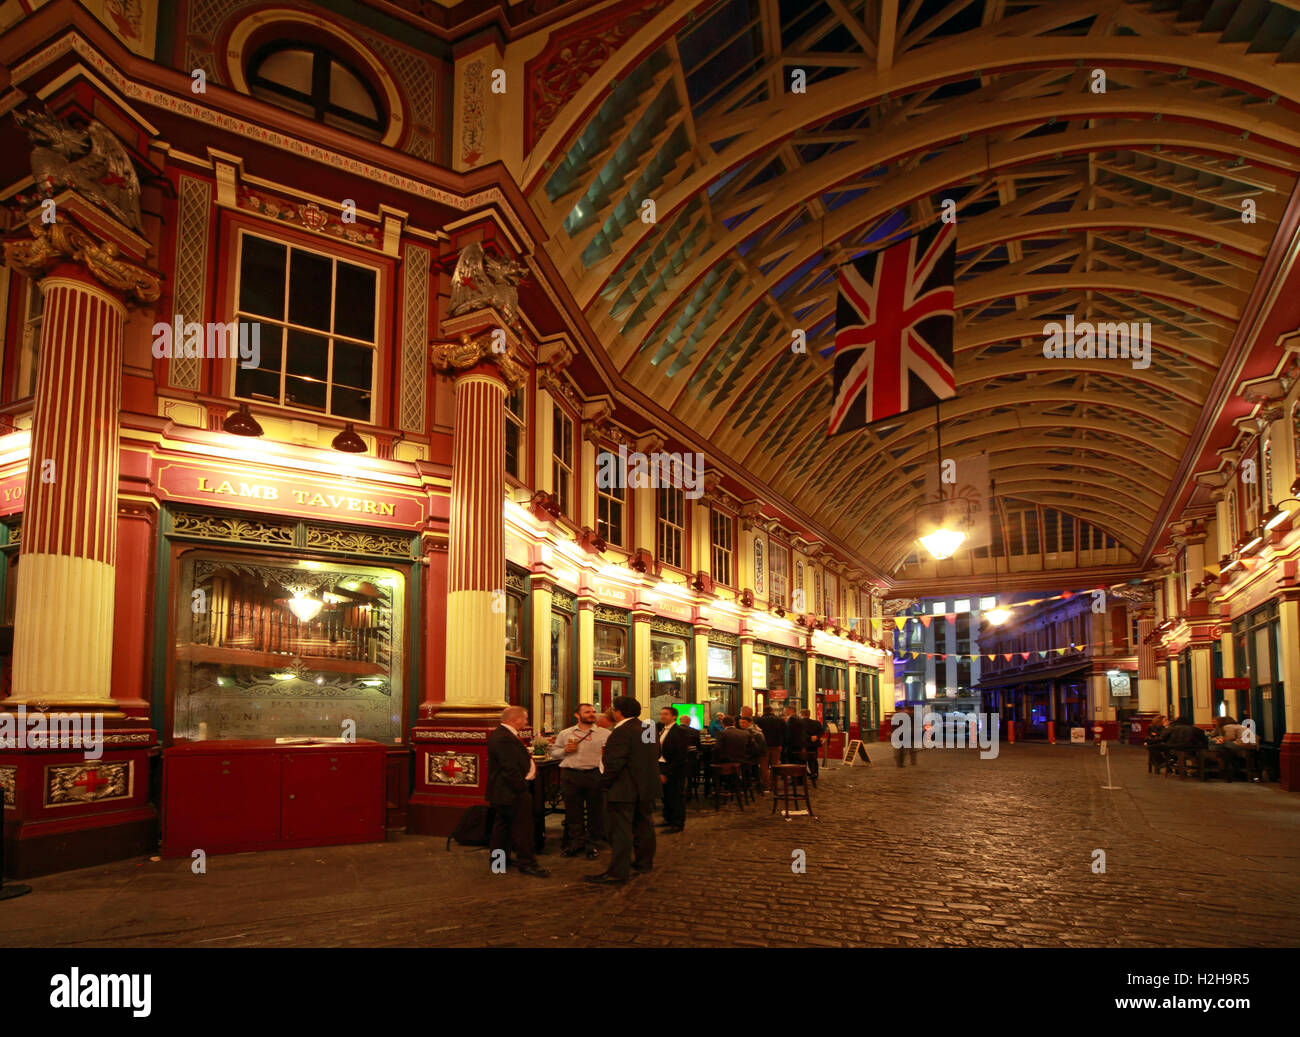 Evening,nightlife,dusk,covered,historic,pano,landmark,tourist,tourism,site,financial,district,area,bank,banking,pedestrian,passageway,passages,vendors,cheesemongers,butchers,florists,bar,pub,bars,pubs,ornate,roof,glass,cobbled,cobbles,attraction,Grade,II,Sir Horace Jones,Tourist Attraction,GoTonySmith,@HotpixUK,Tony,Smith,UK,GB,Great,Britain,United,Kingdom,English,British,England,color,colour,panorama,union,flag,jack,pubs,bars,of,London,classic,tourist,attraction,travel,vacation,Buy Pictures of,Buy Images Of,Images of,Stock Images,Tony Smith,United Kingdom,Great Britain,British Isles,UnionJack,Union Jack,Pubs Of London,must see